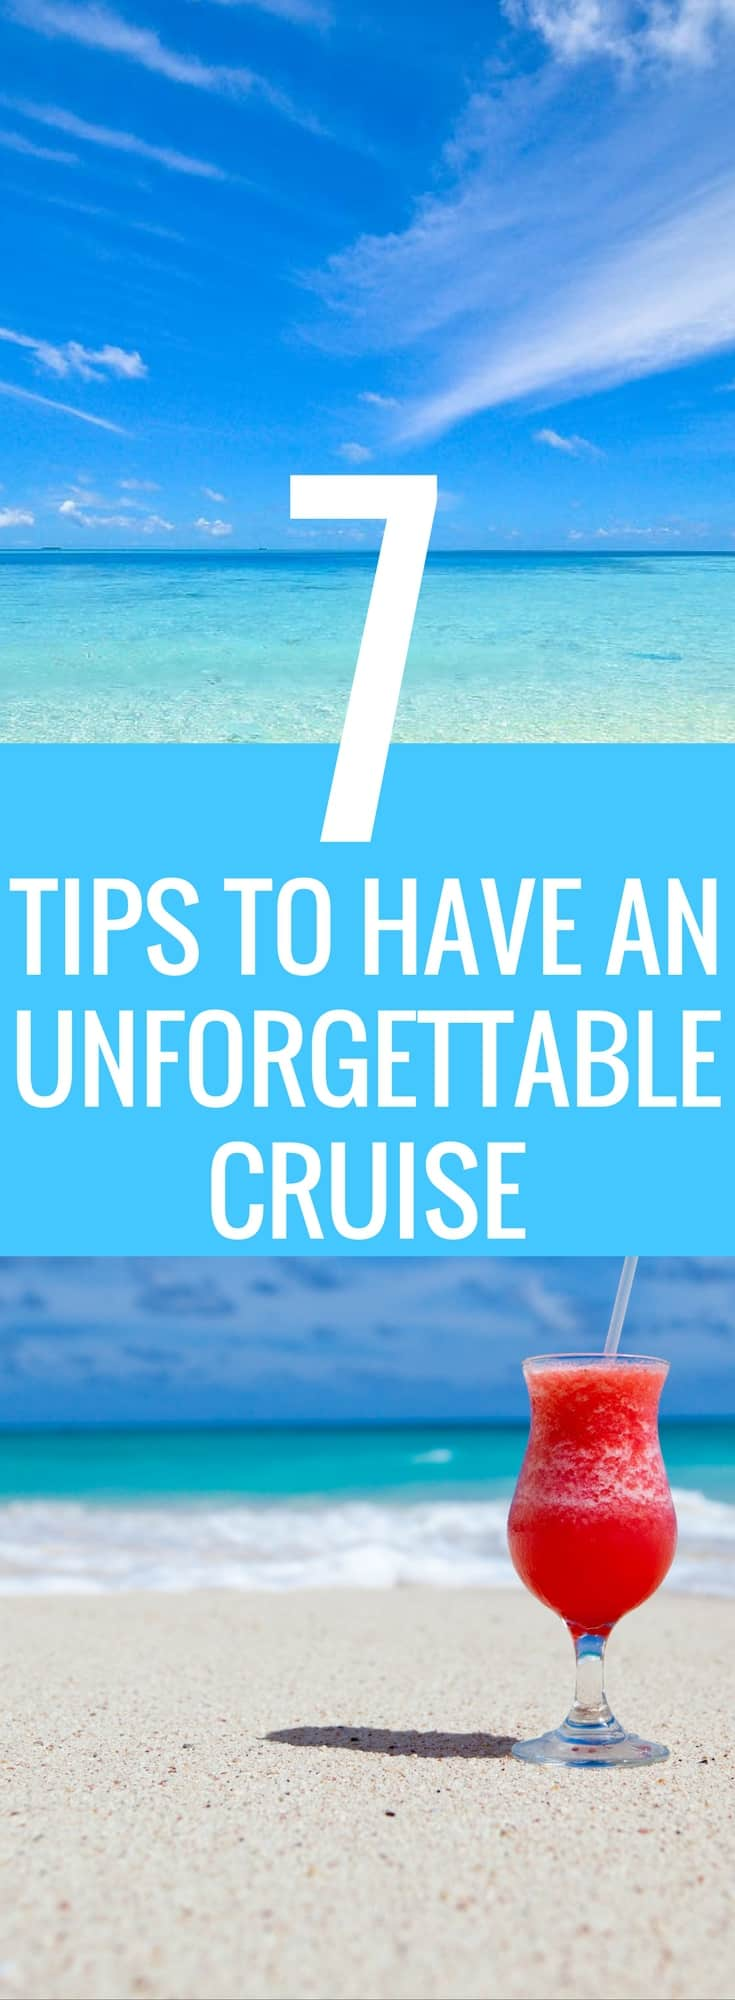 These 7 cruise tips are the BEST! I'm so glad I found this AMAZING cruise checklist! Now I have some great ideas to use when I pack for my next cruise. You gotta pin this!  #Cruise #Vacation #Summer #TravelTips #CruiseHacks